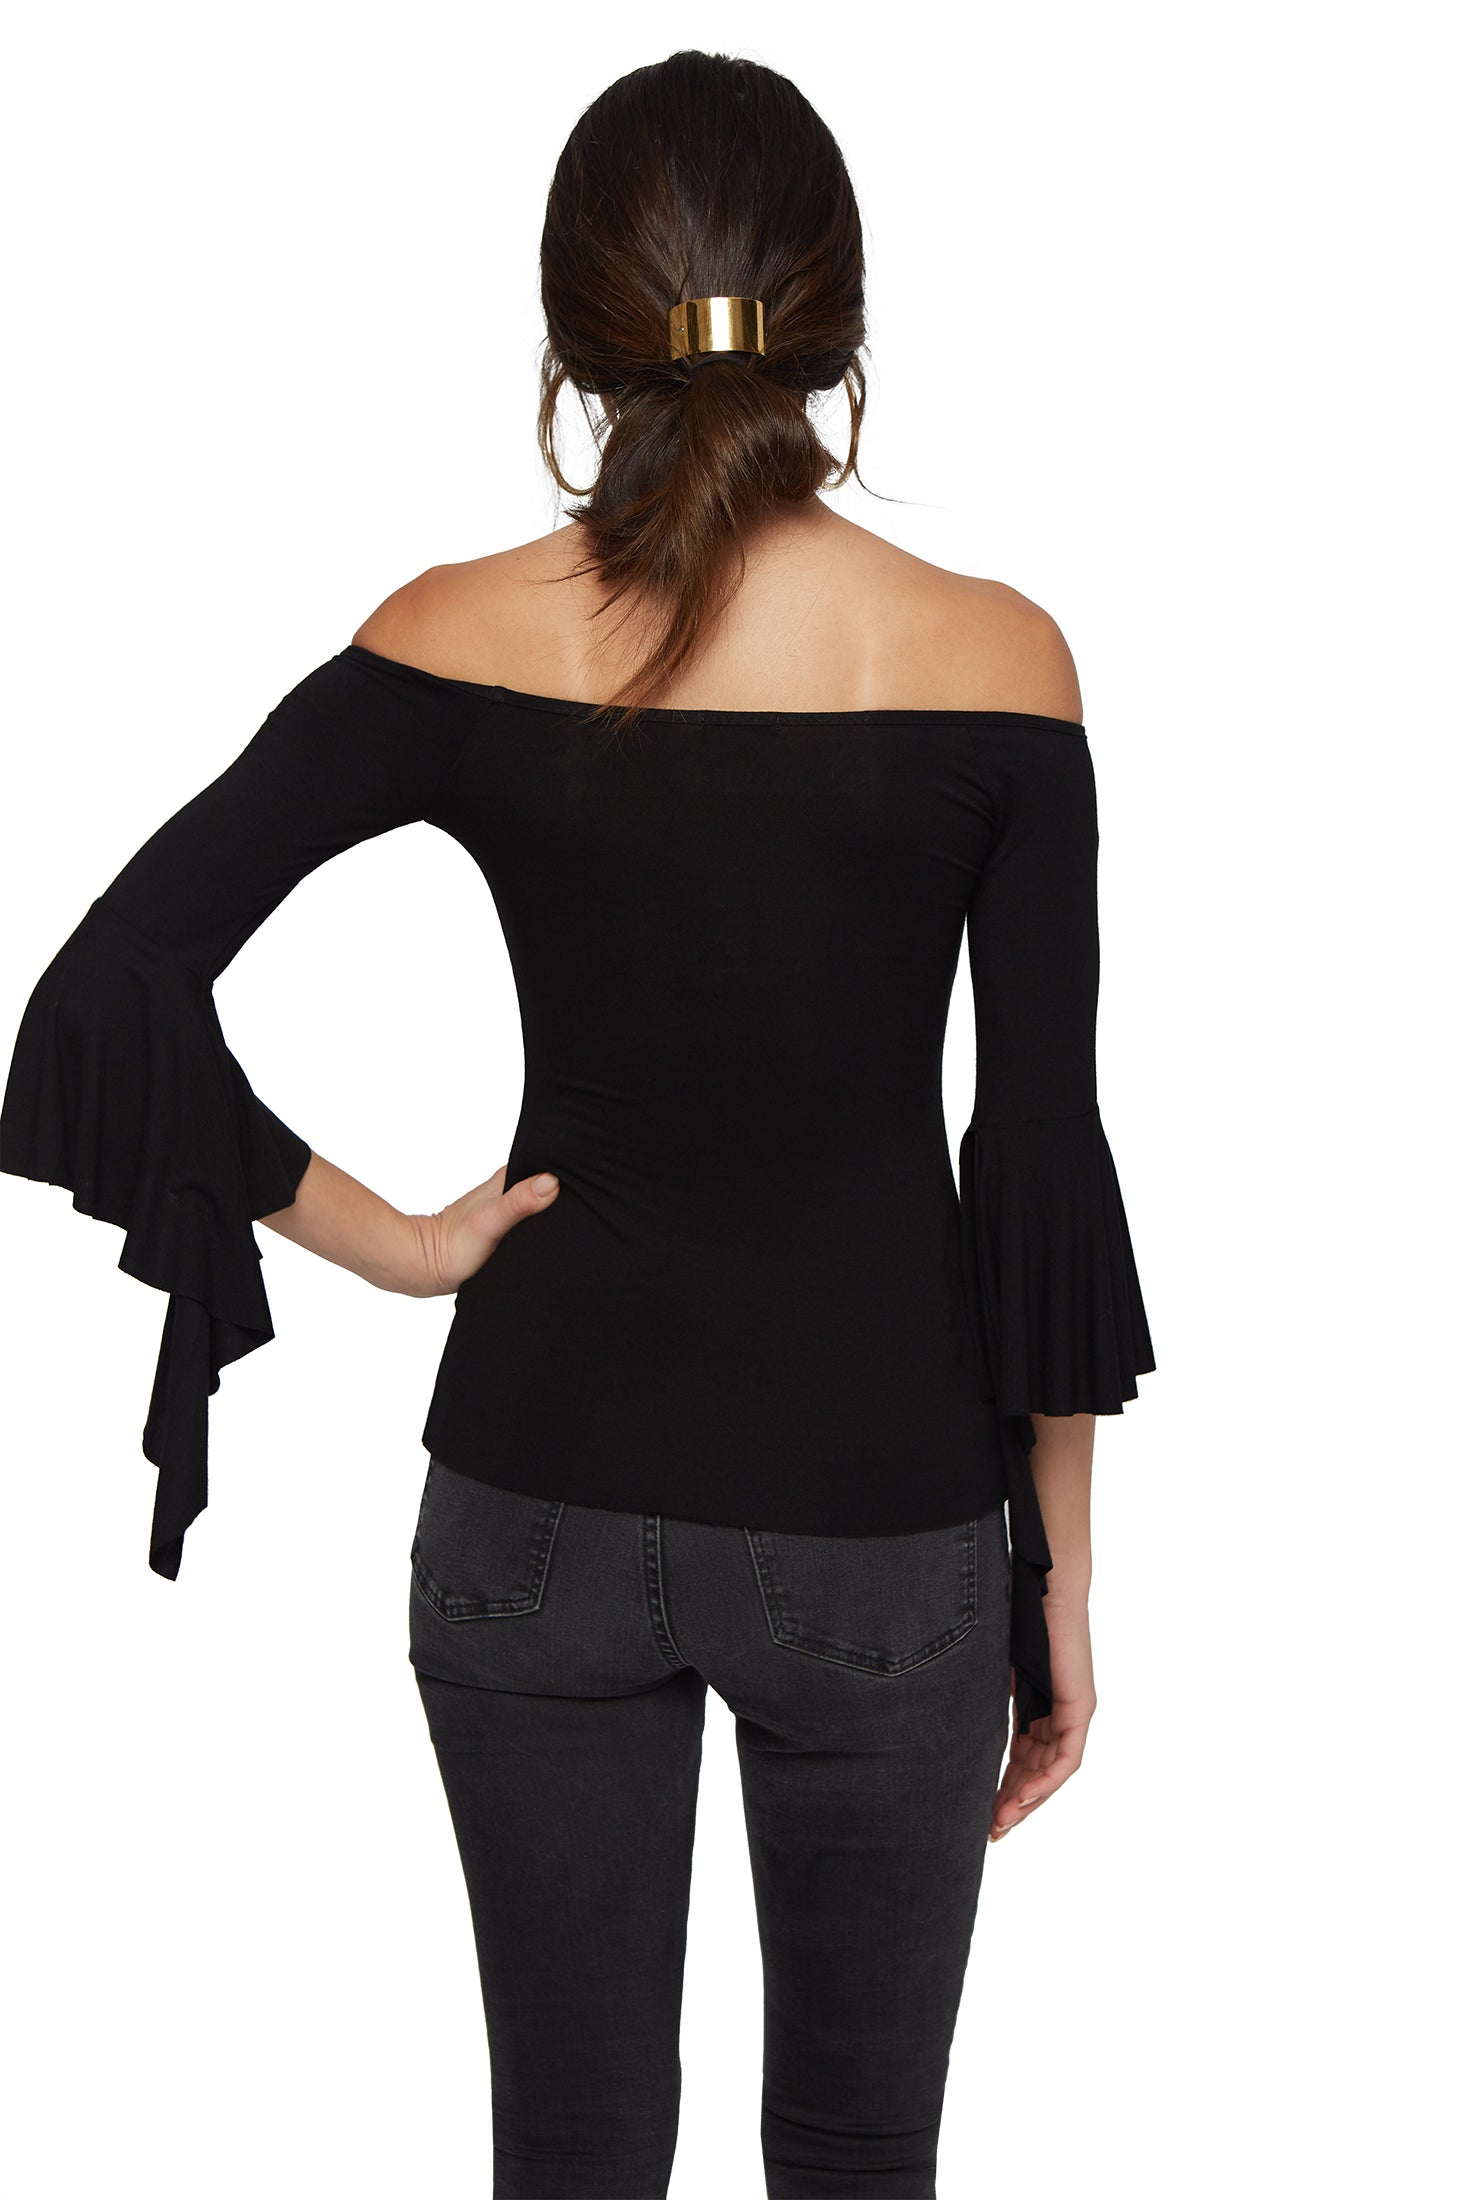 Clarity Top - Black